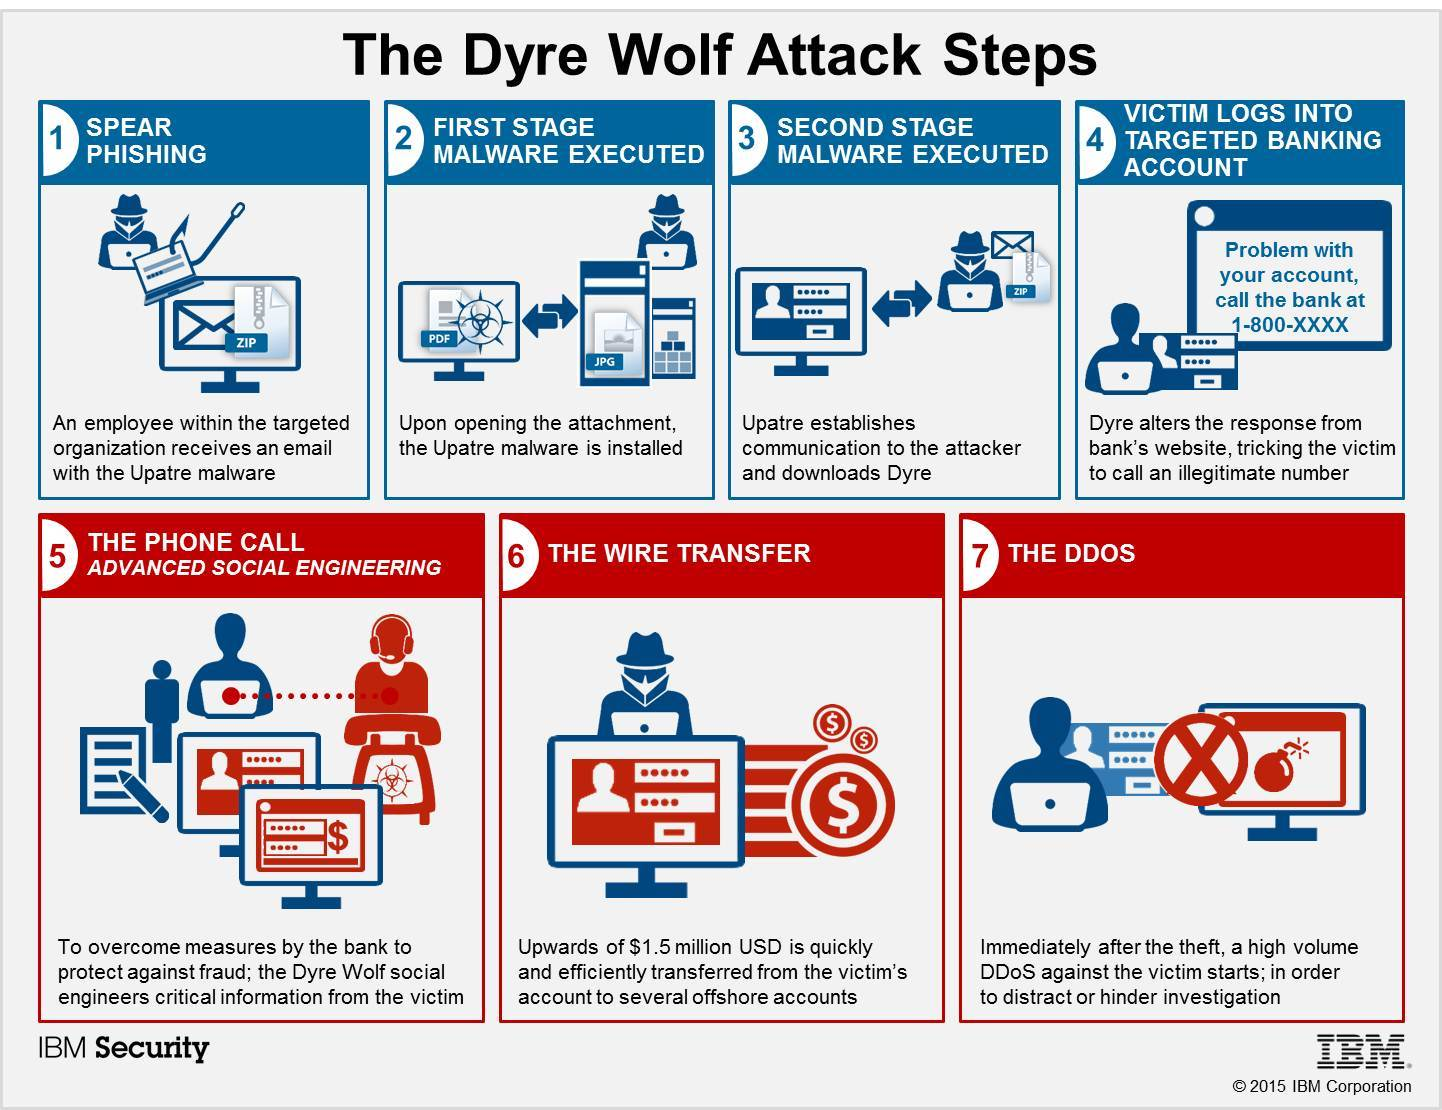 The Dyre Wolf Attack Steps